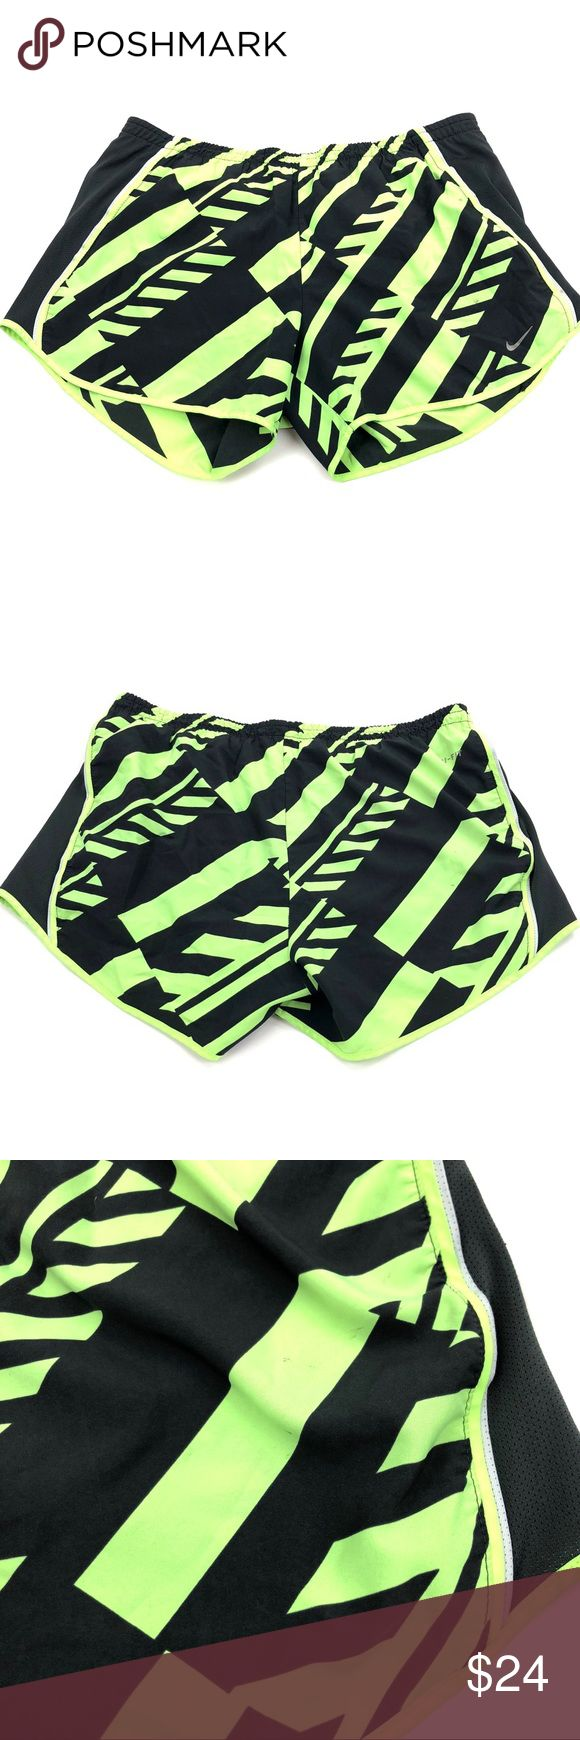 """Nike Tempo Shorts Size Medium Neon Green Black Nike Dri Fit Tempo Shorts Size Medium Built in Briefs   Waist: 15""""  Inseam: 3""""  Condition: Good pre-owned condition. Light signs of wear. Nike Shorts"""